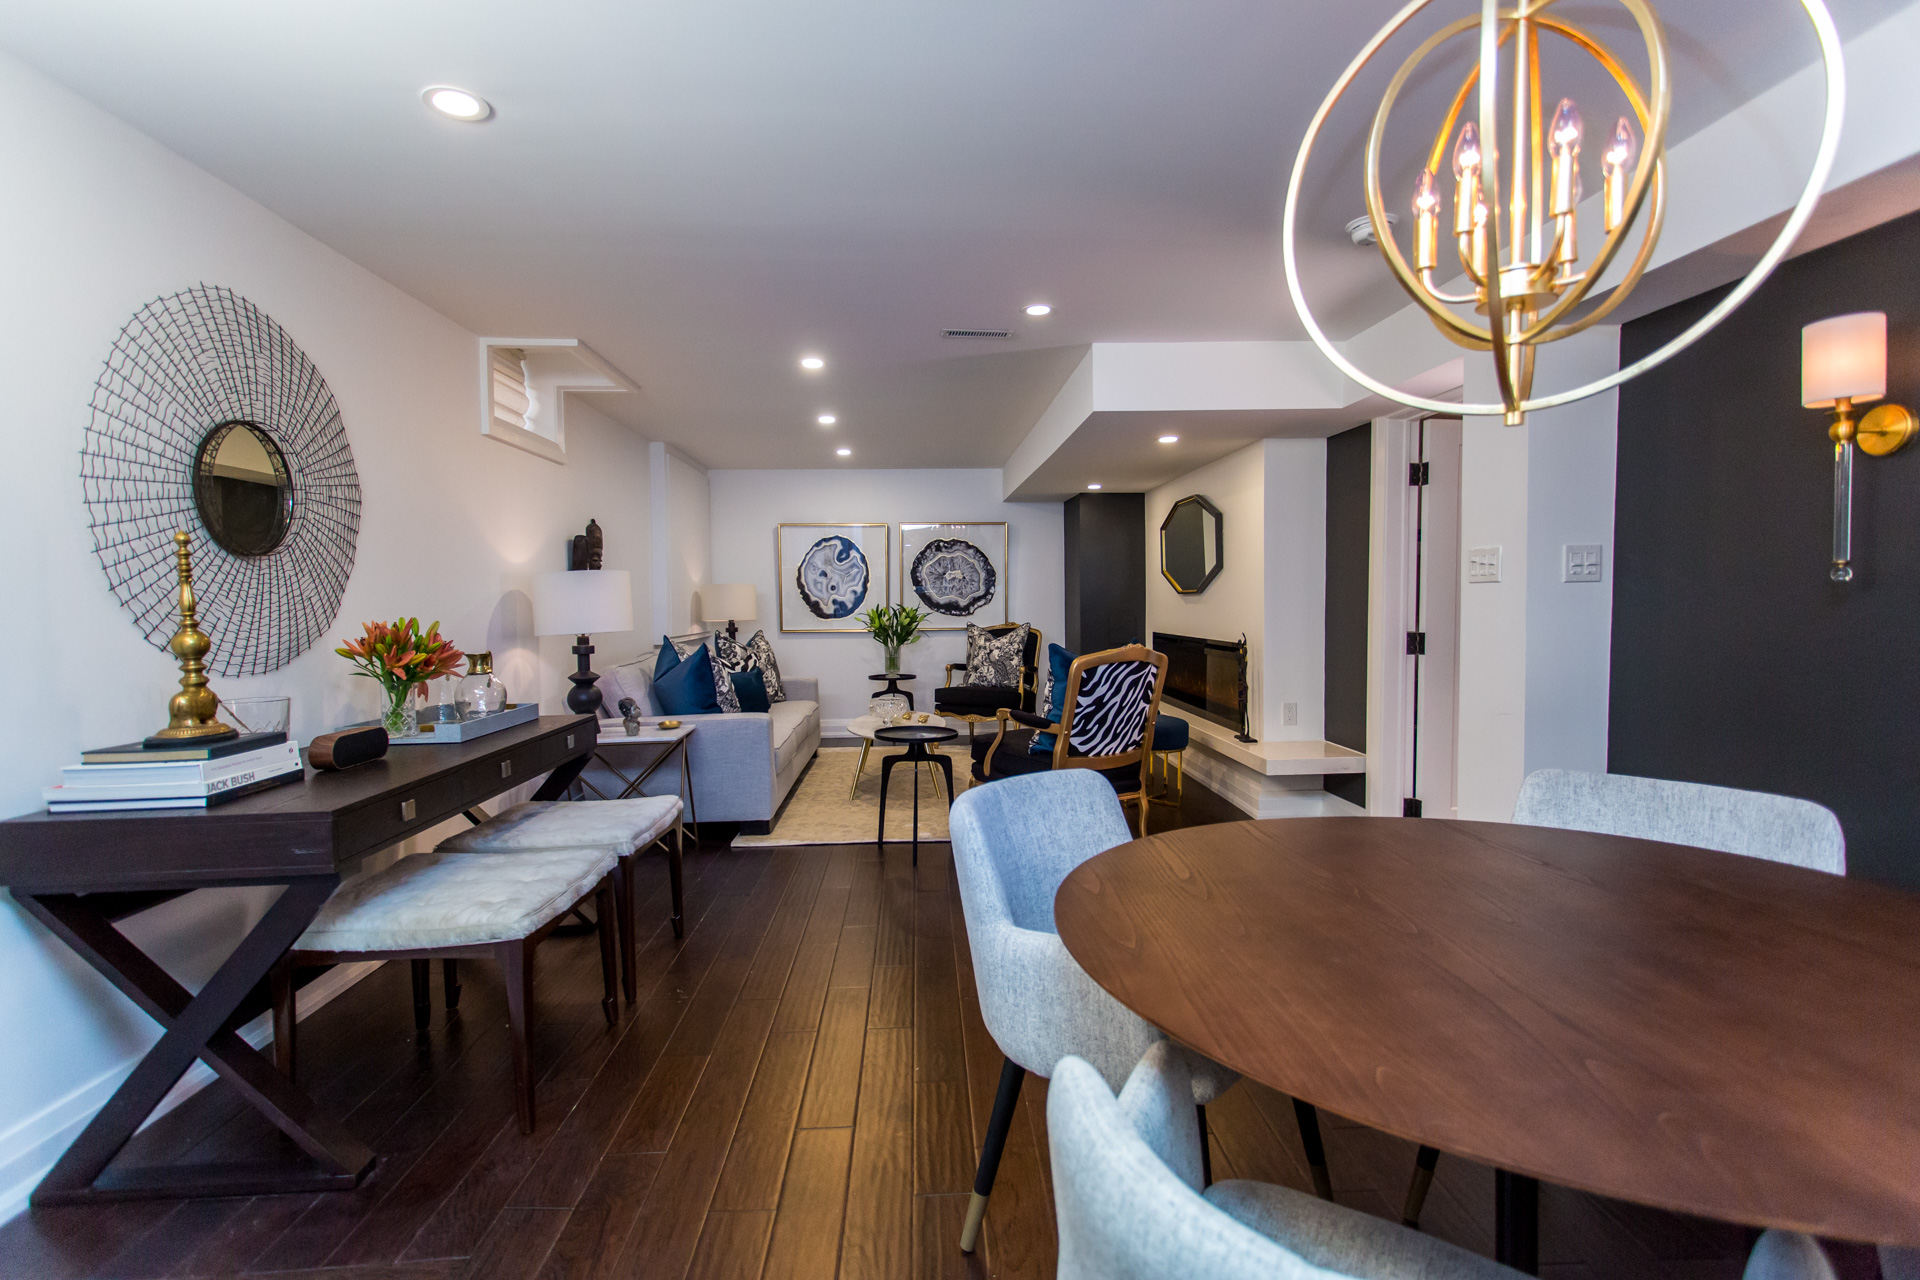 Metrie's Very Square Scene II Baseboard makes a seamless appearance in this stunning basement apartment on Bryan Inc.